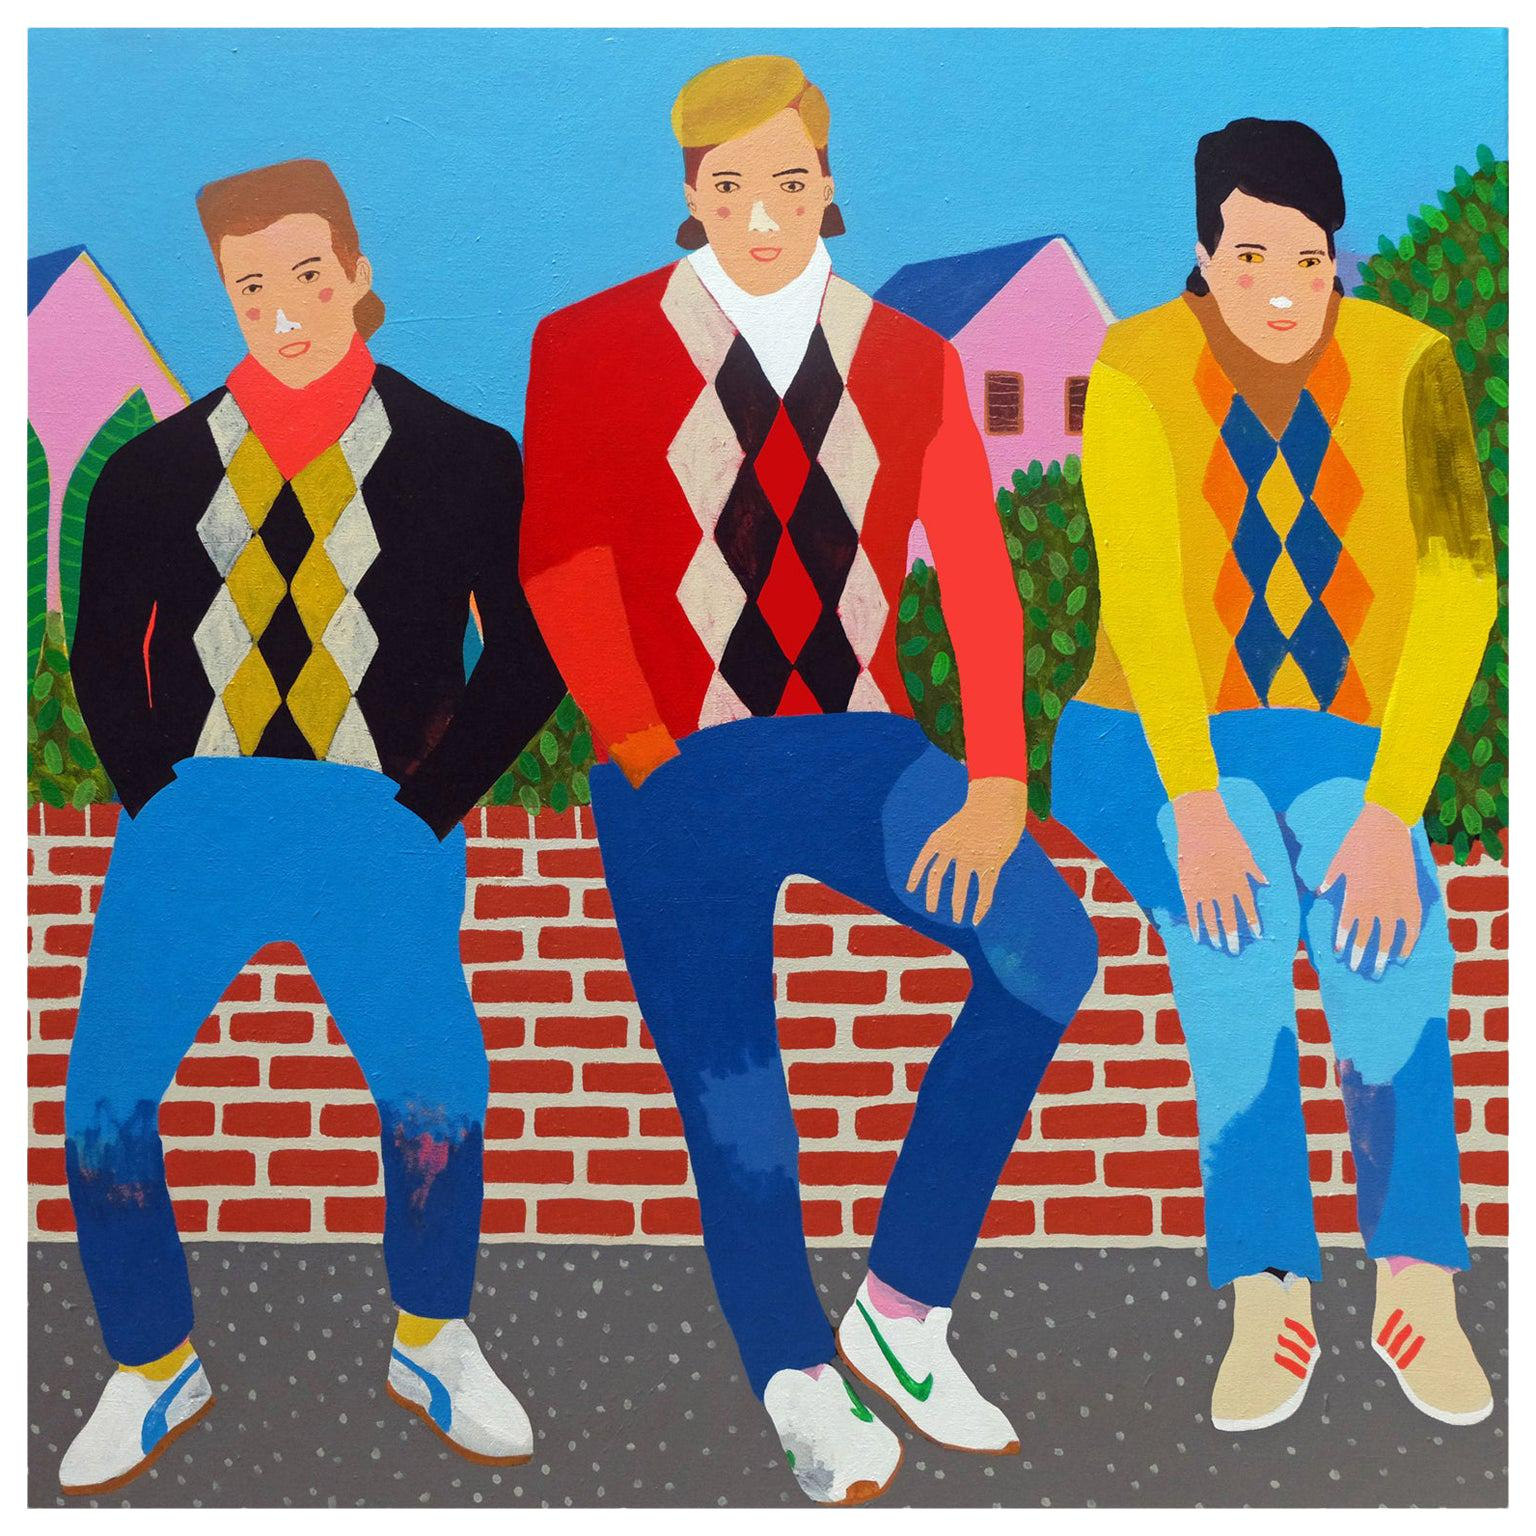 'The Casuals' Portrait Painting by Alan Fears Pop Art Fashion, 1980s